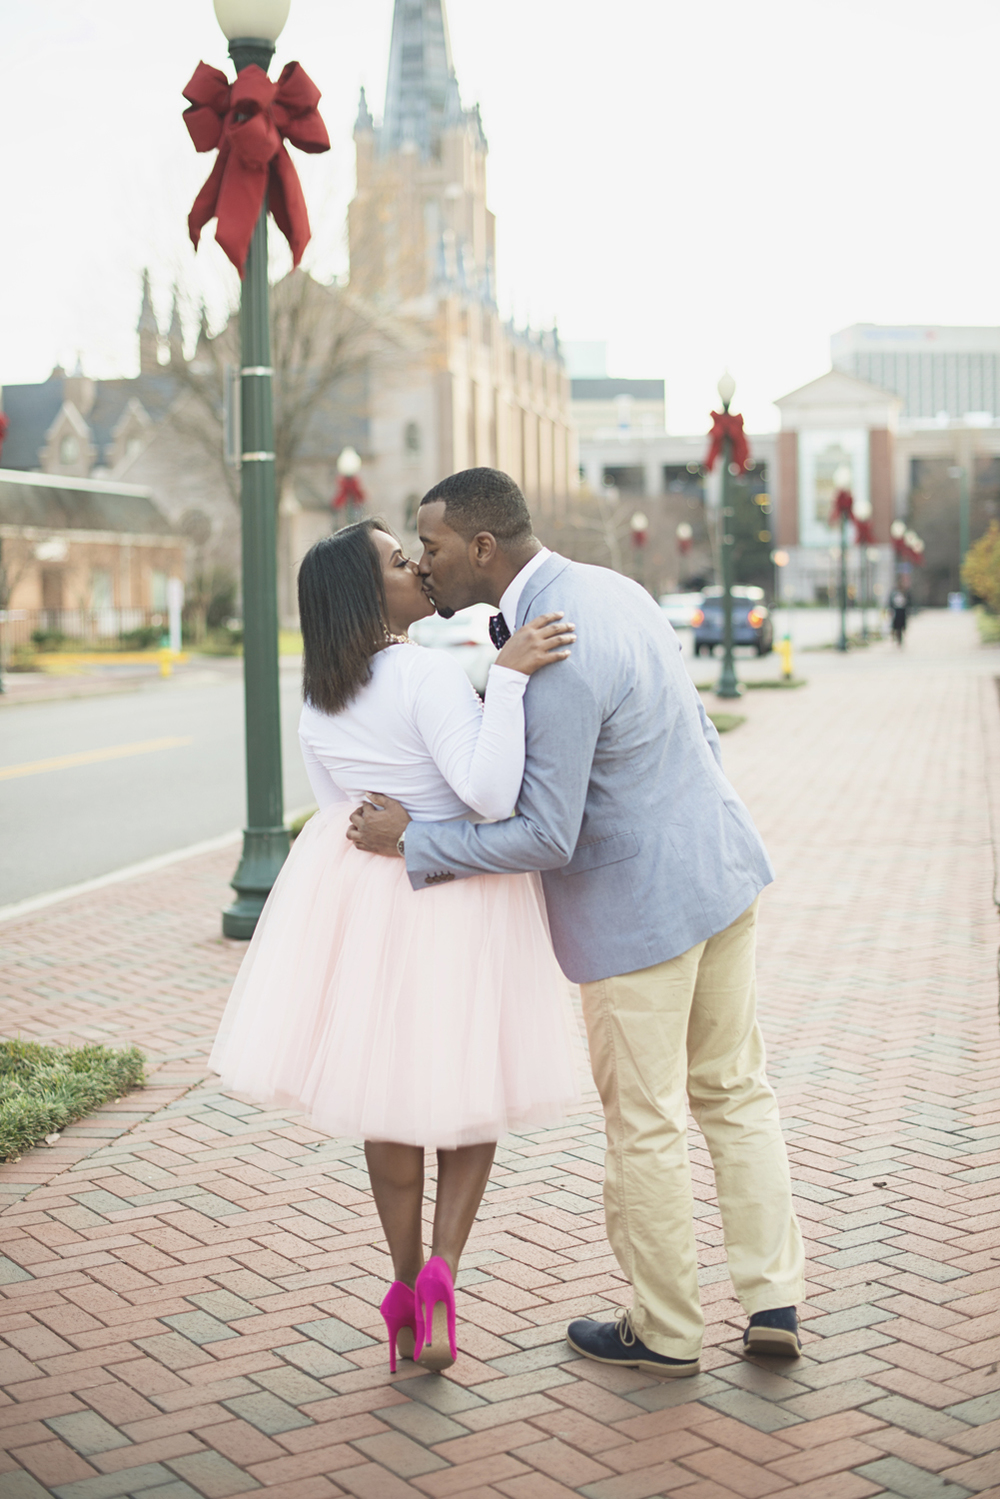 Carrie Bradshaw/Sex and the City Inspired Engagement Session in Virginia